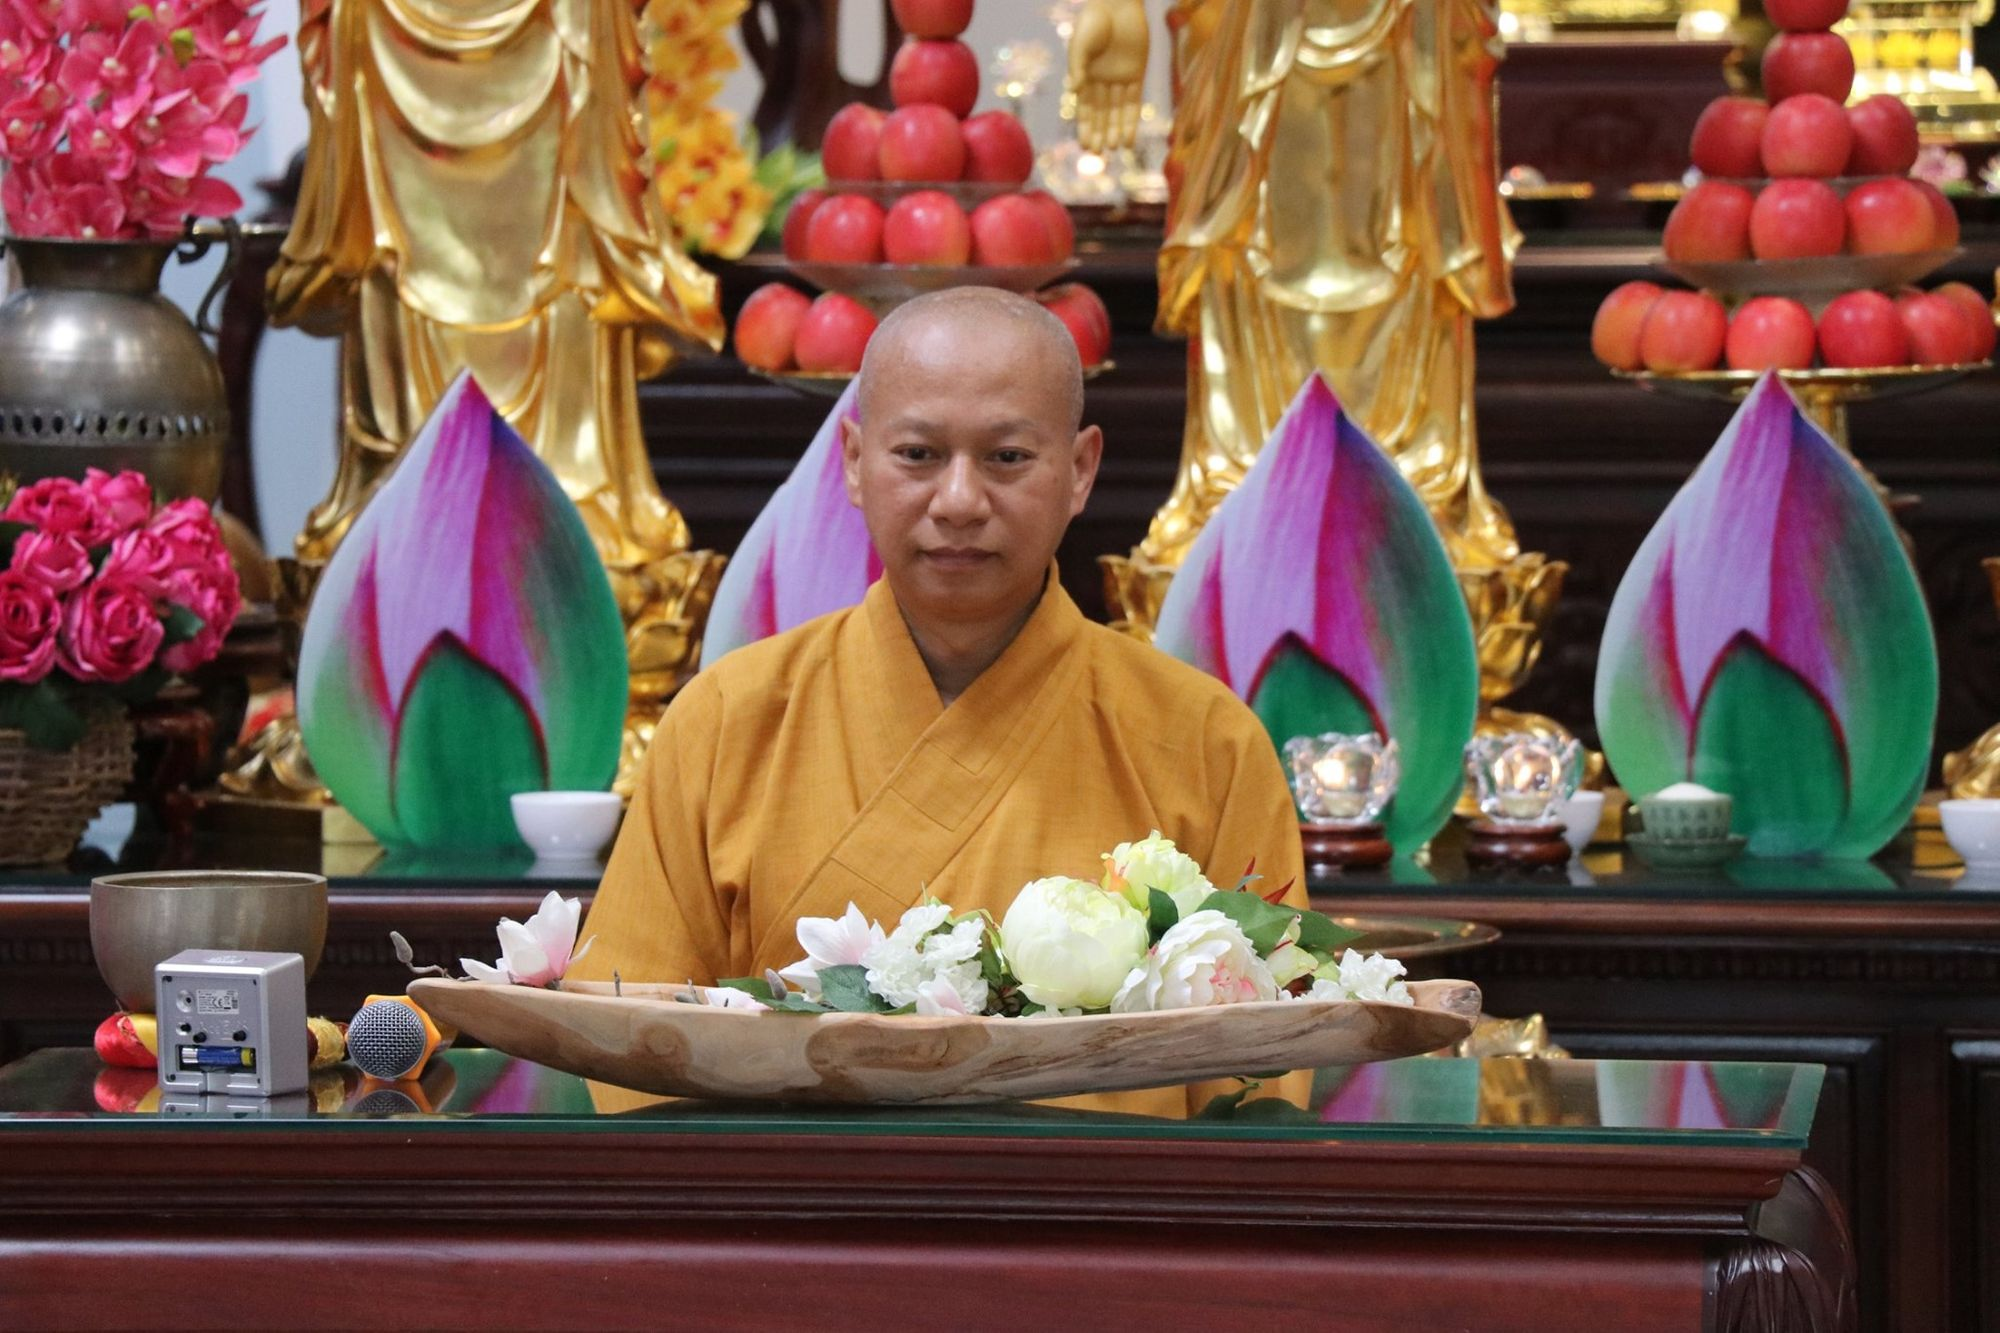 Dharma Talk by Ven. Thich Hanh Tan